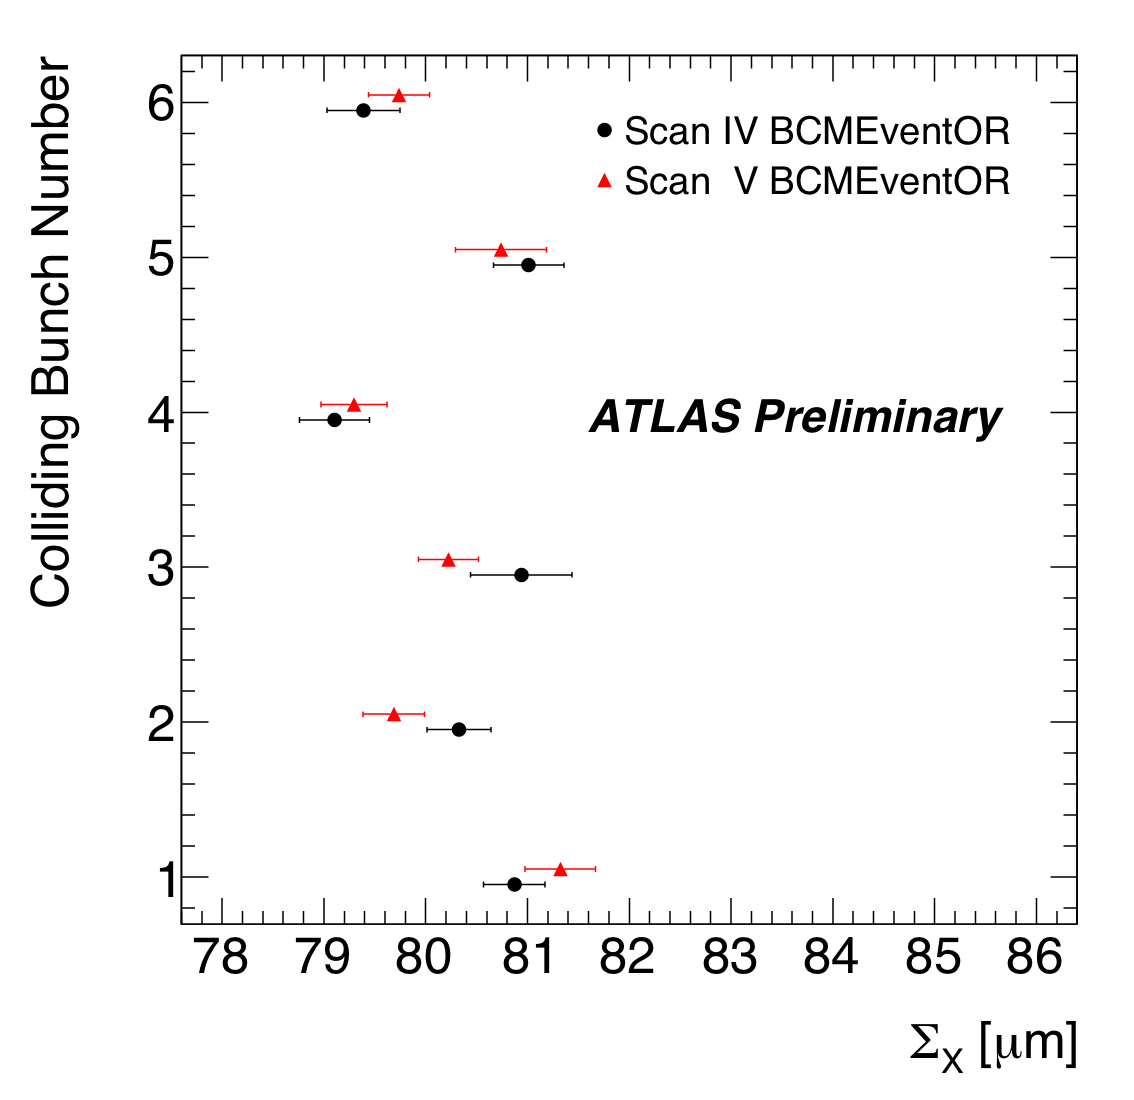 https://atlas.web.cern.ch/Atlas/GROUPS/DATAPREPARATION/PublicPlots/2010/Luminosity/BCM/SigmaXvsBCID_BCM.png